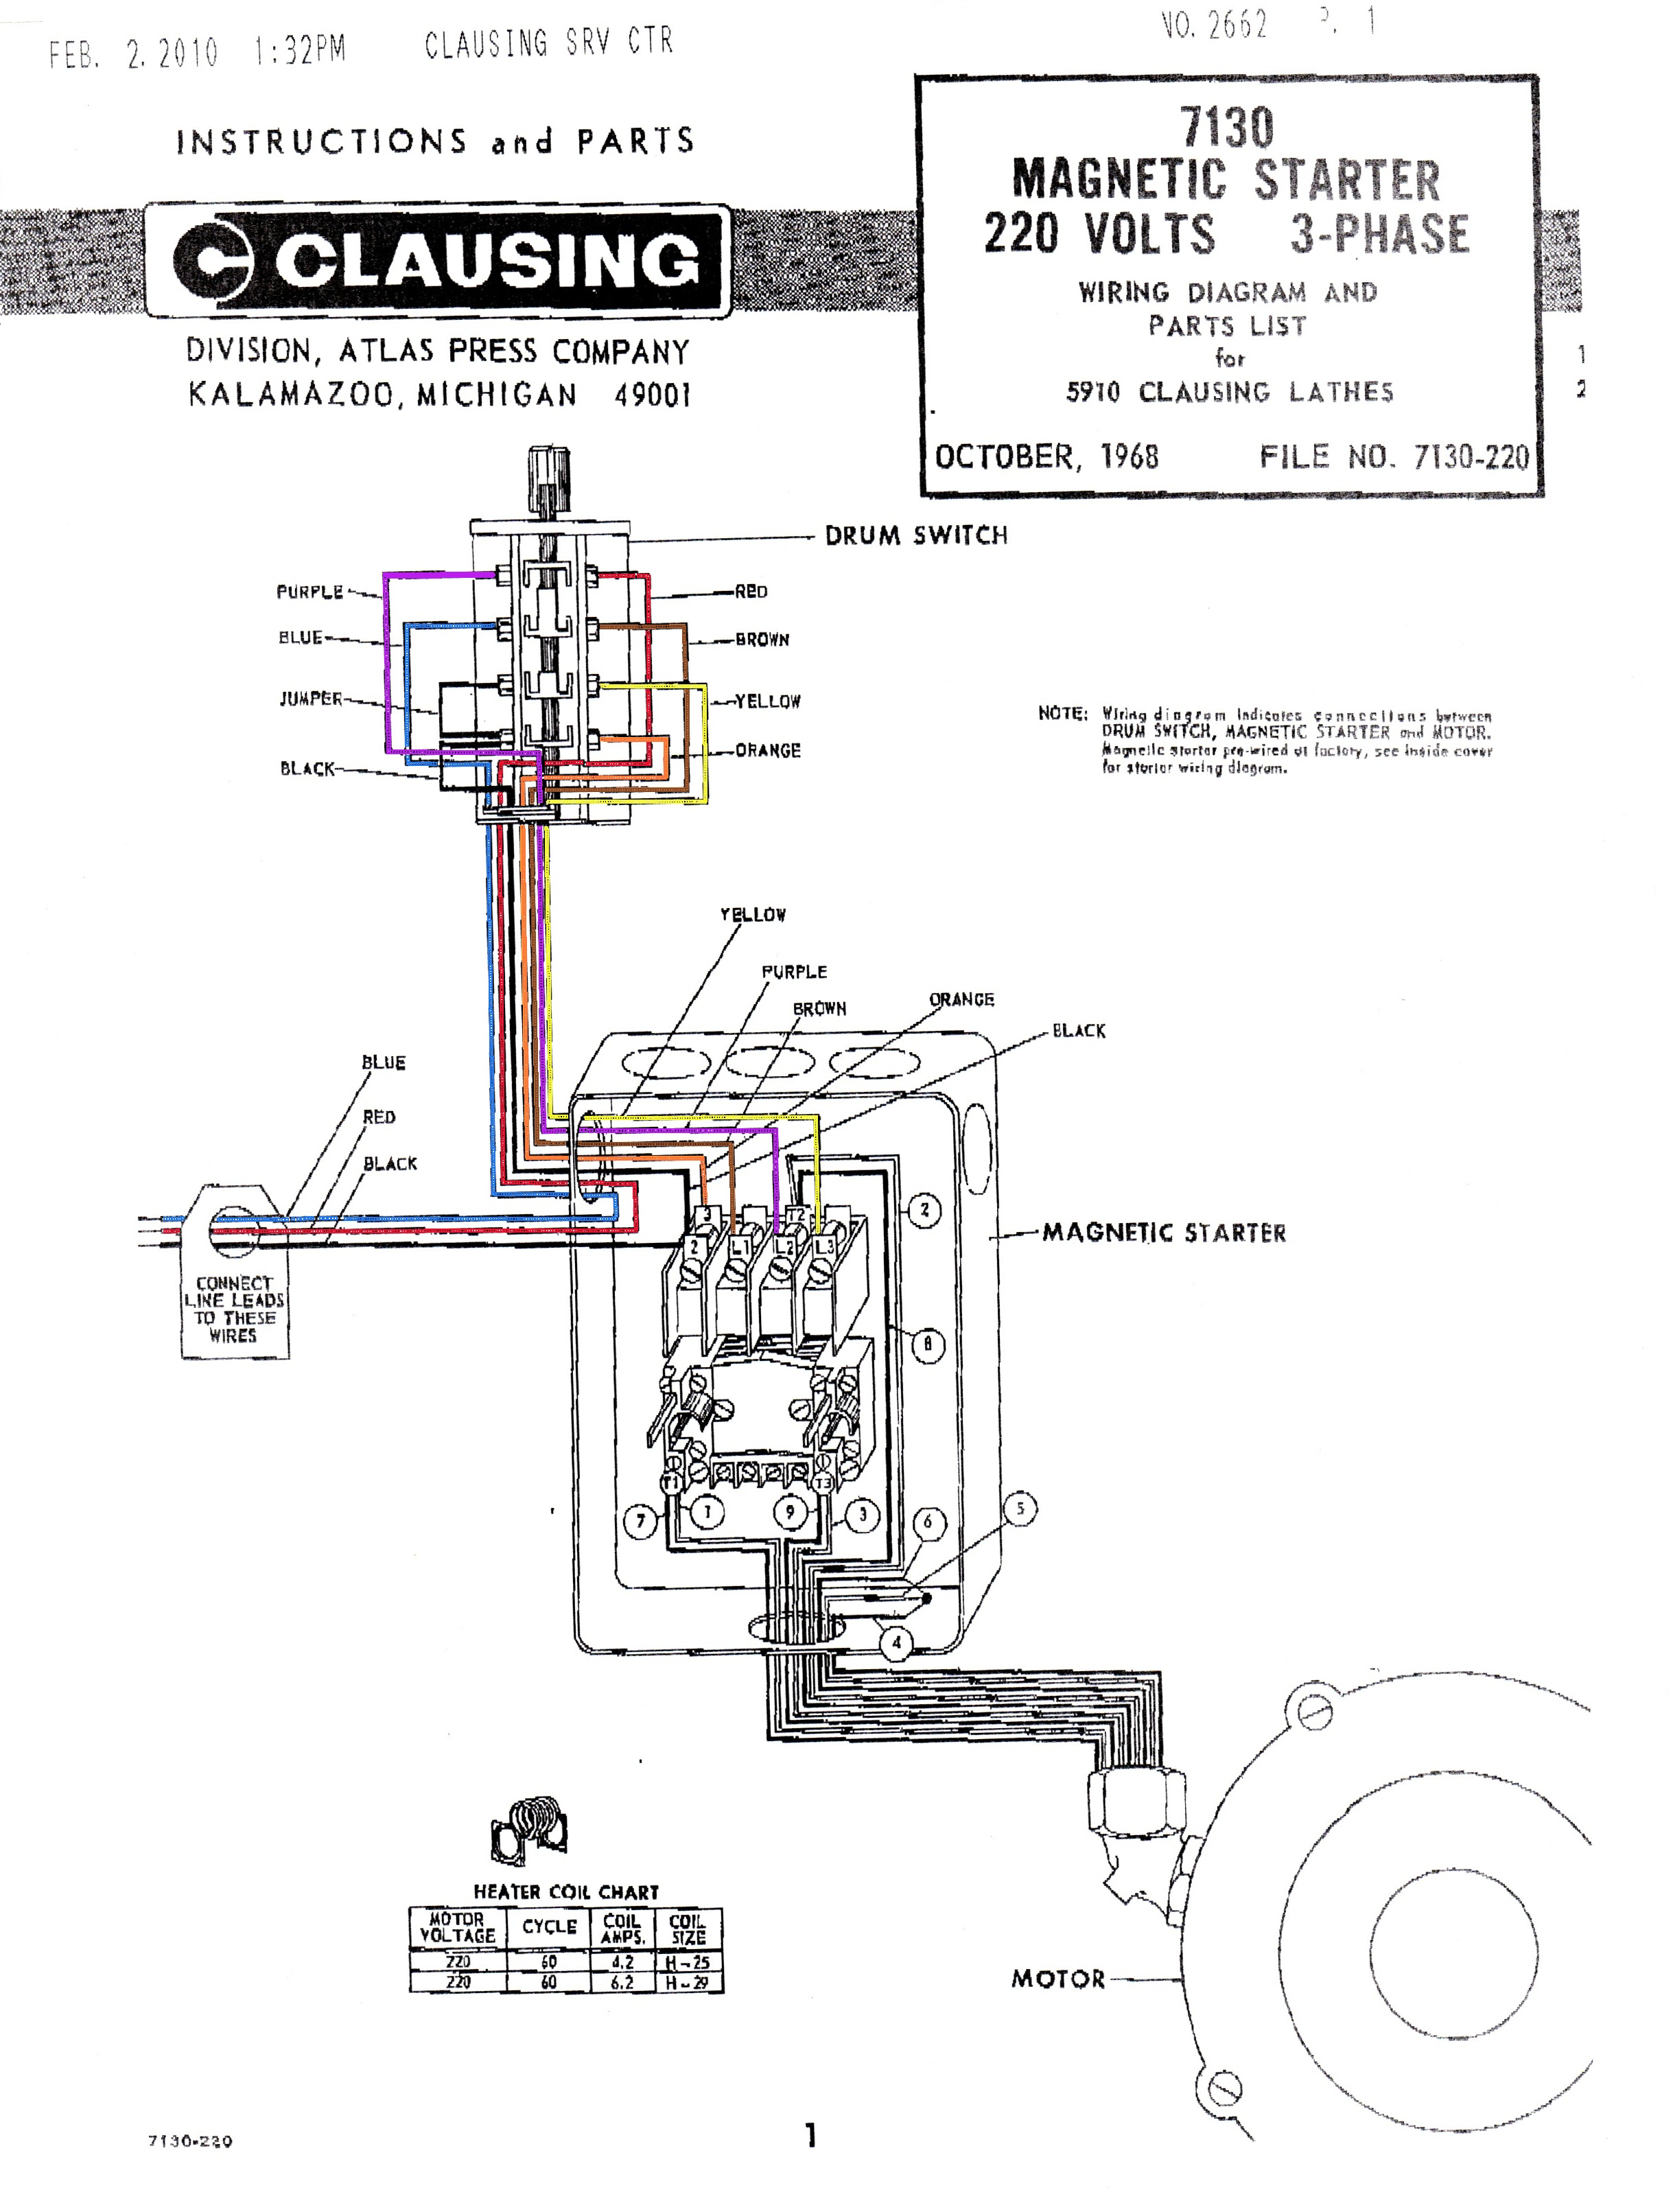 7130 Magnetic Starter Wiring Diagram Color starter wiring diagrams mag wiring diagrams instruction starter wiring diagram at panicattacktreatment.co